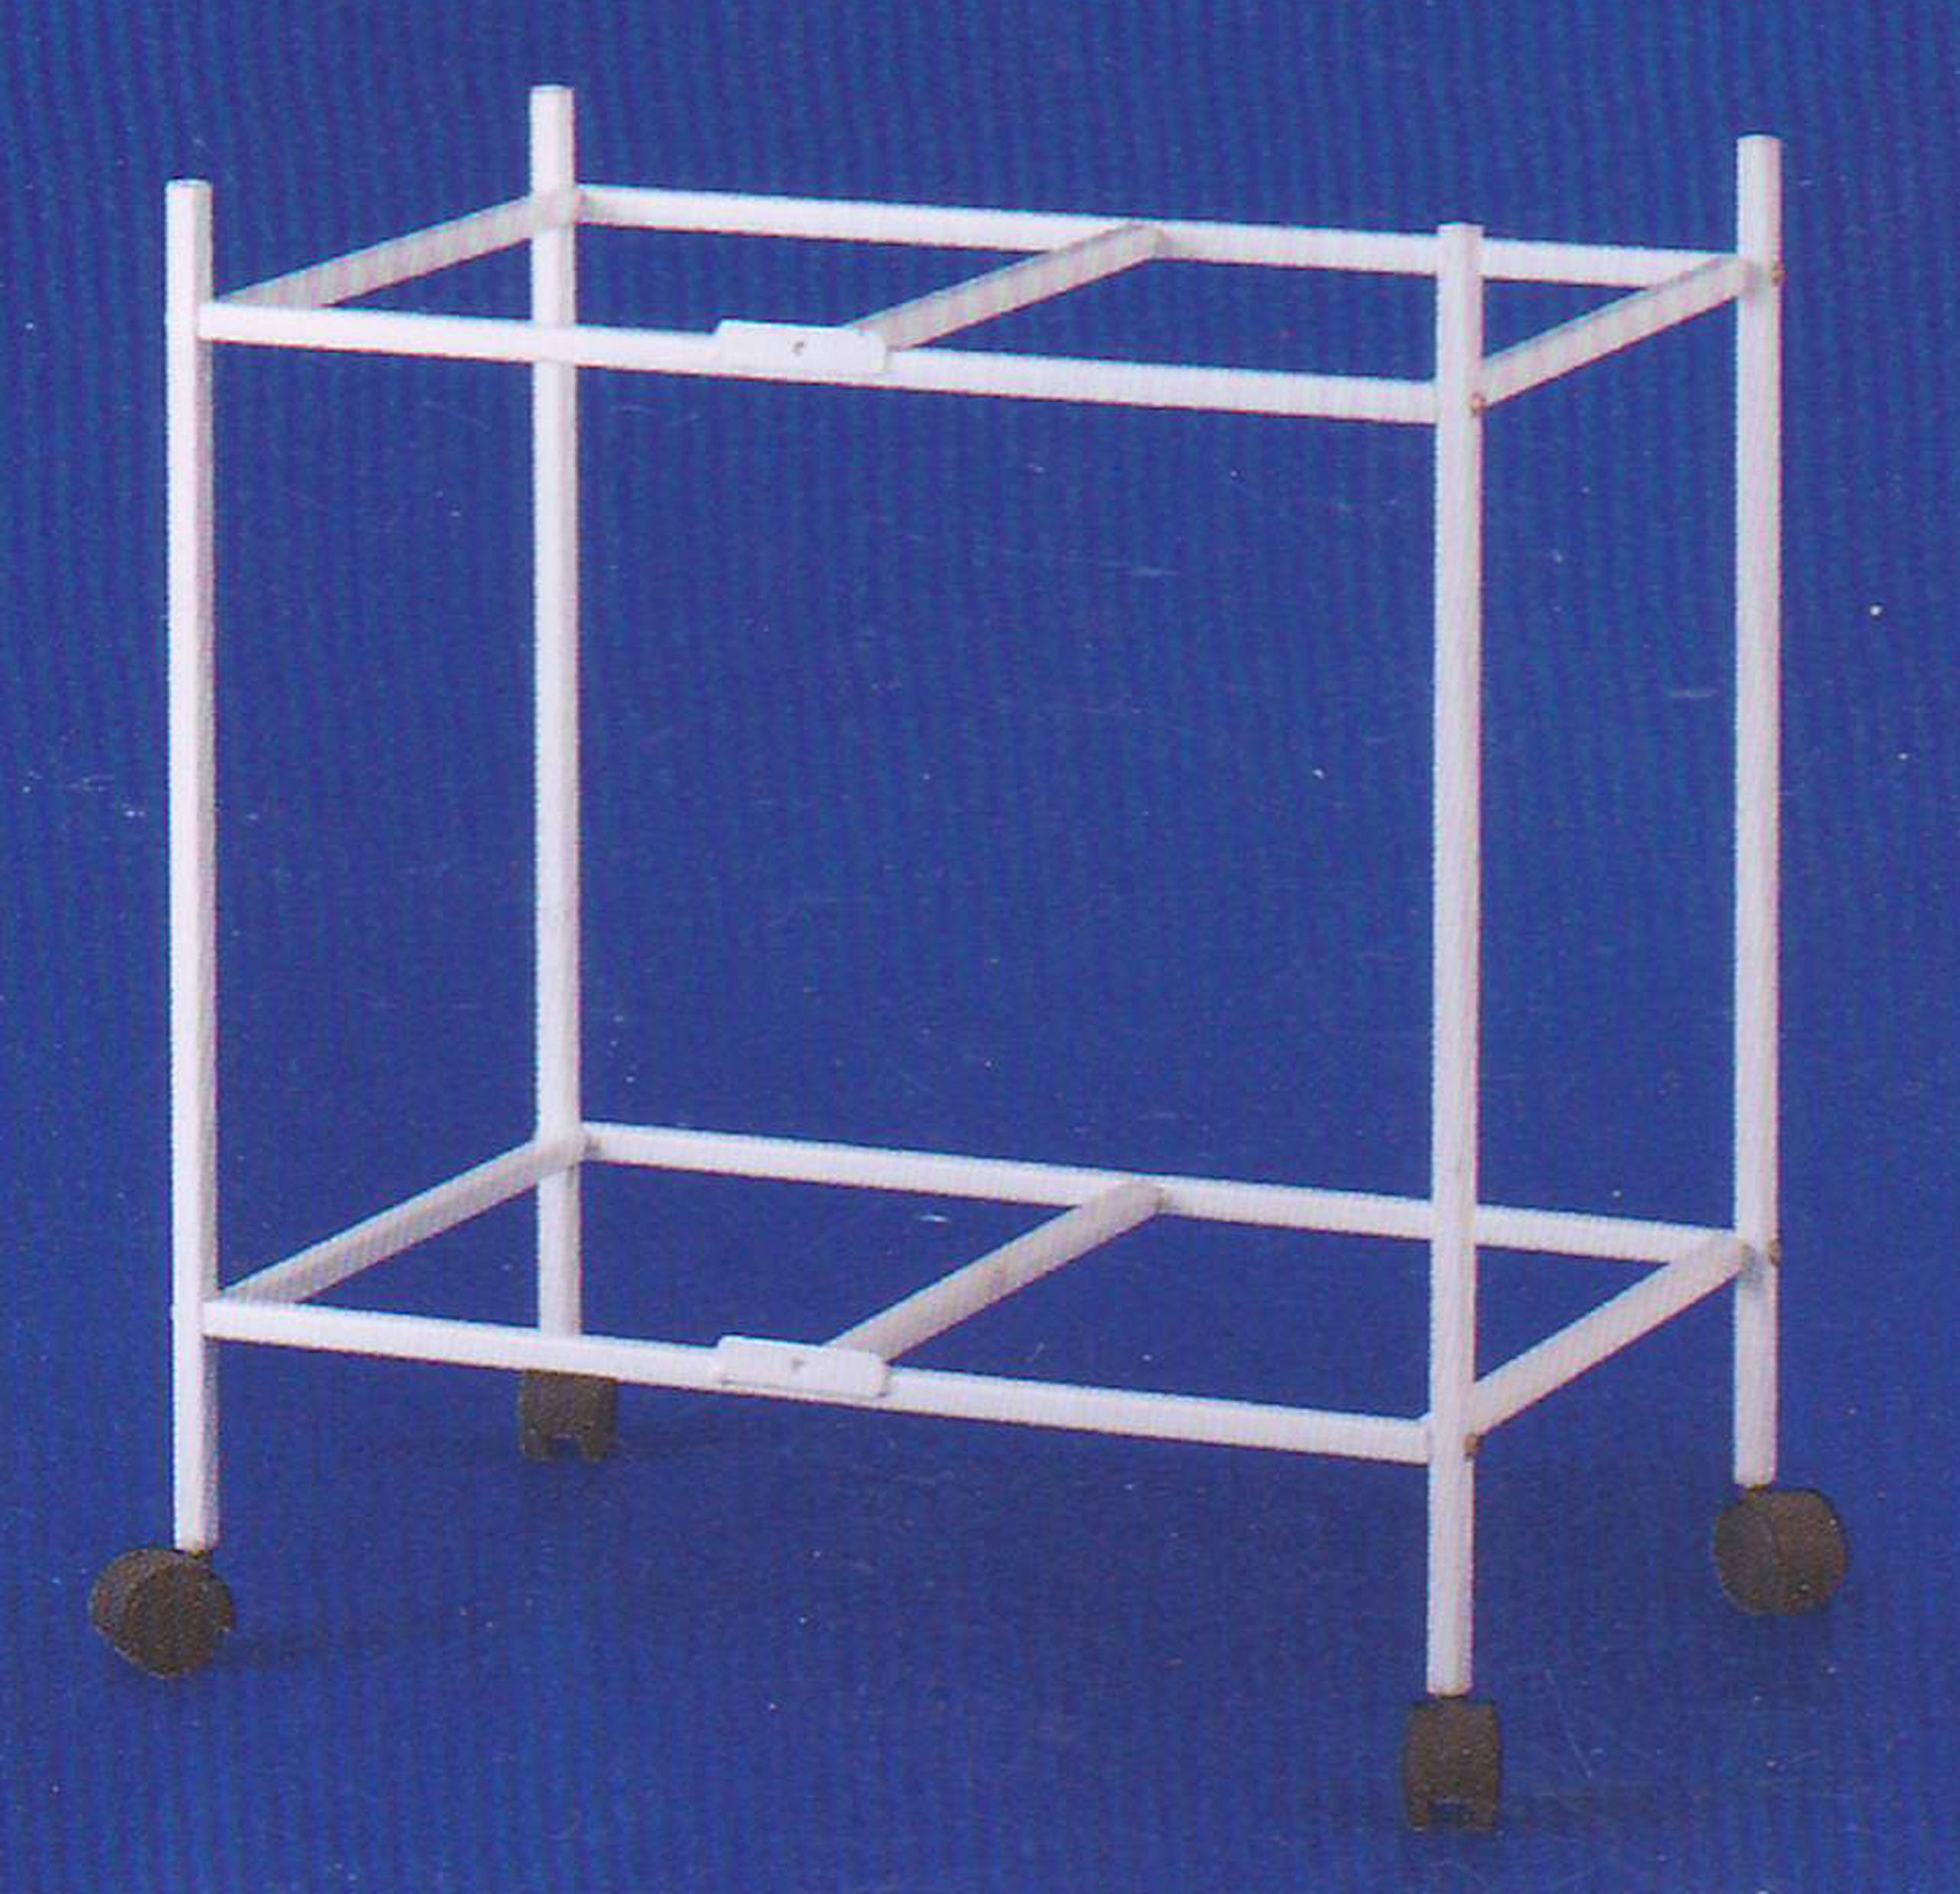 Mcage 2-Shelf Stand for Two of 24'' x 16'' x 16'' Breeding Flight Cages (White) by Mcage